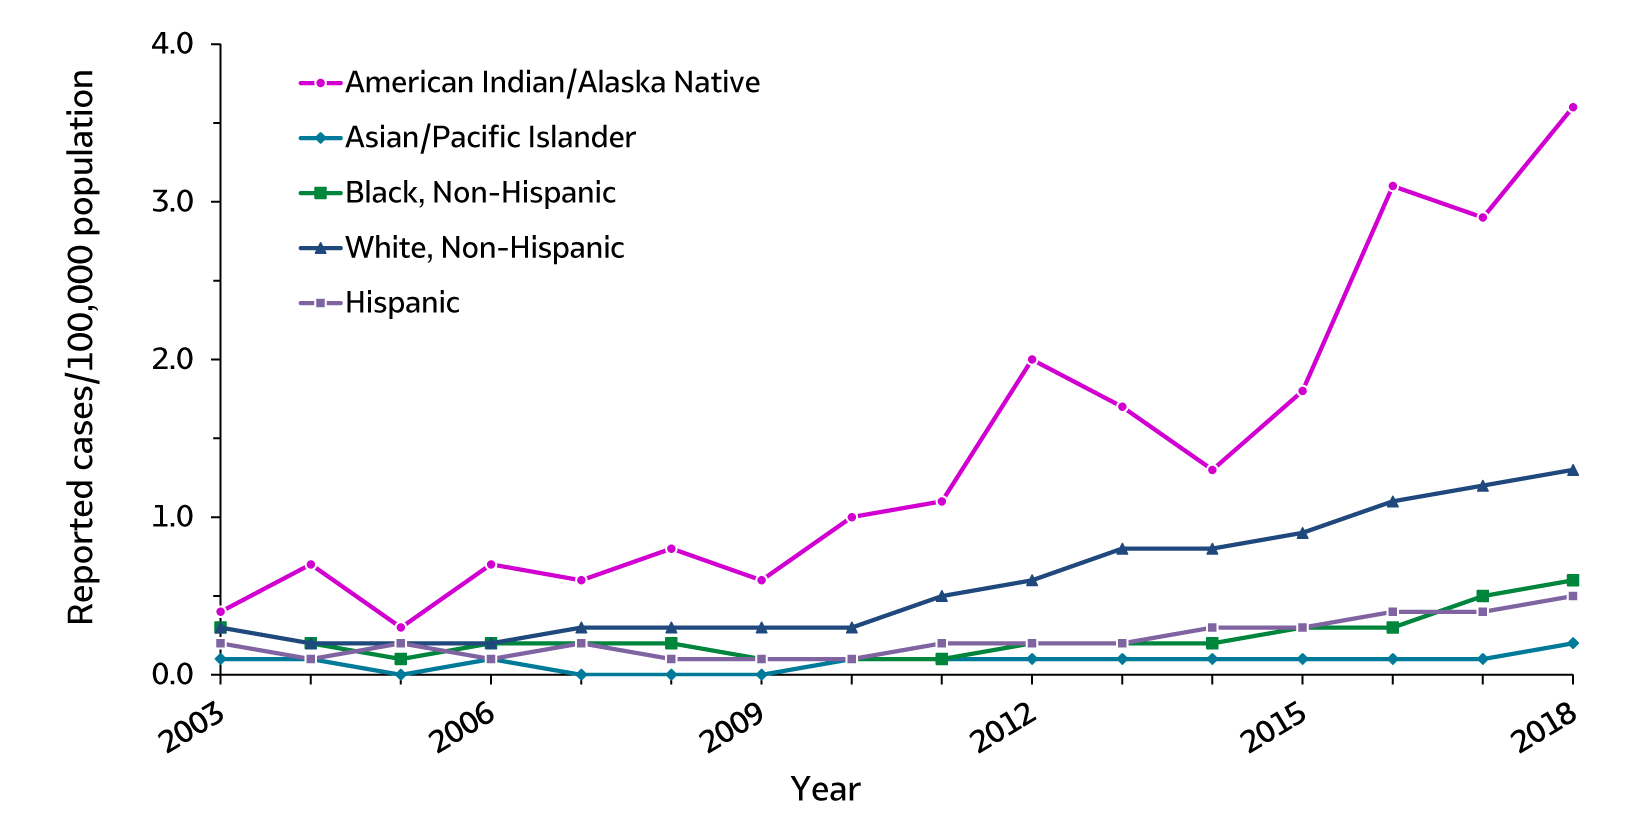 Figure 3.6. This line graph shows trends in rates of acute hepatitis C by race/ethnicity from 2003 through 2018. The race/ethnicity classifications are American Indian/Alaska Native, Asian/Pacific Islander, Black non-Hispanic, White non-Hispanic, and Hispanic. Apart from Asian/Pacific Islanders, rates have increased for all race/ethnicity groups since 2012. There was a small increase in acute hepatitis C among Asian/Pacific Islanders in 2018.